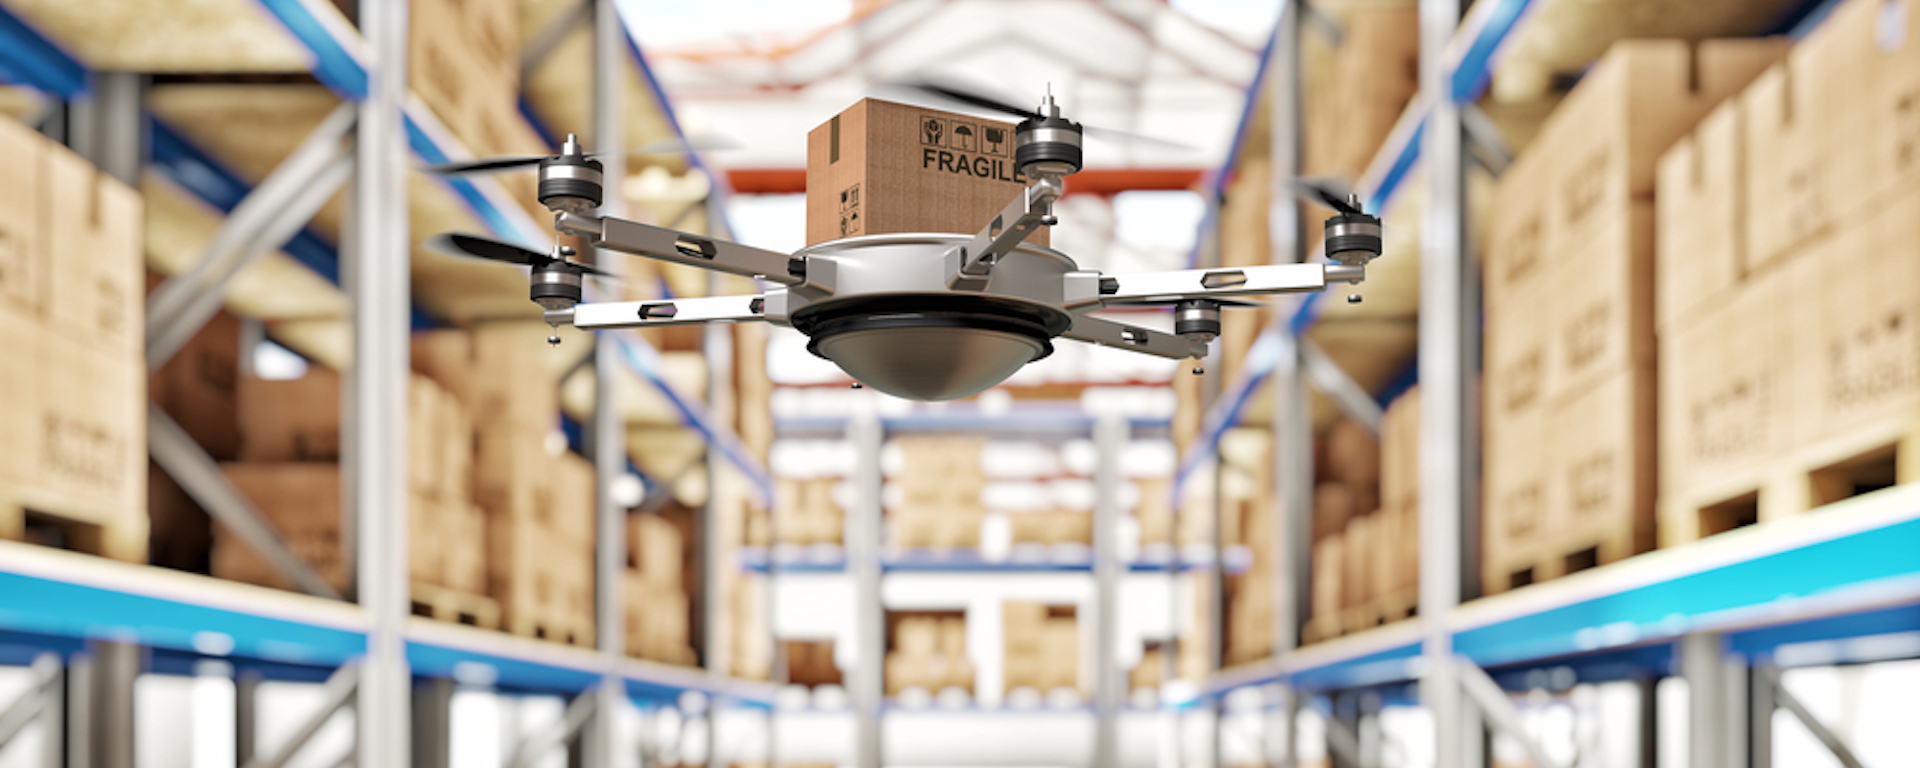 Walmart To Deploy Drones As Part Of New Digital Initiatives